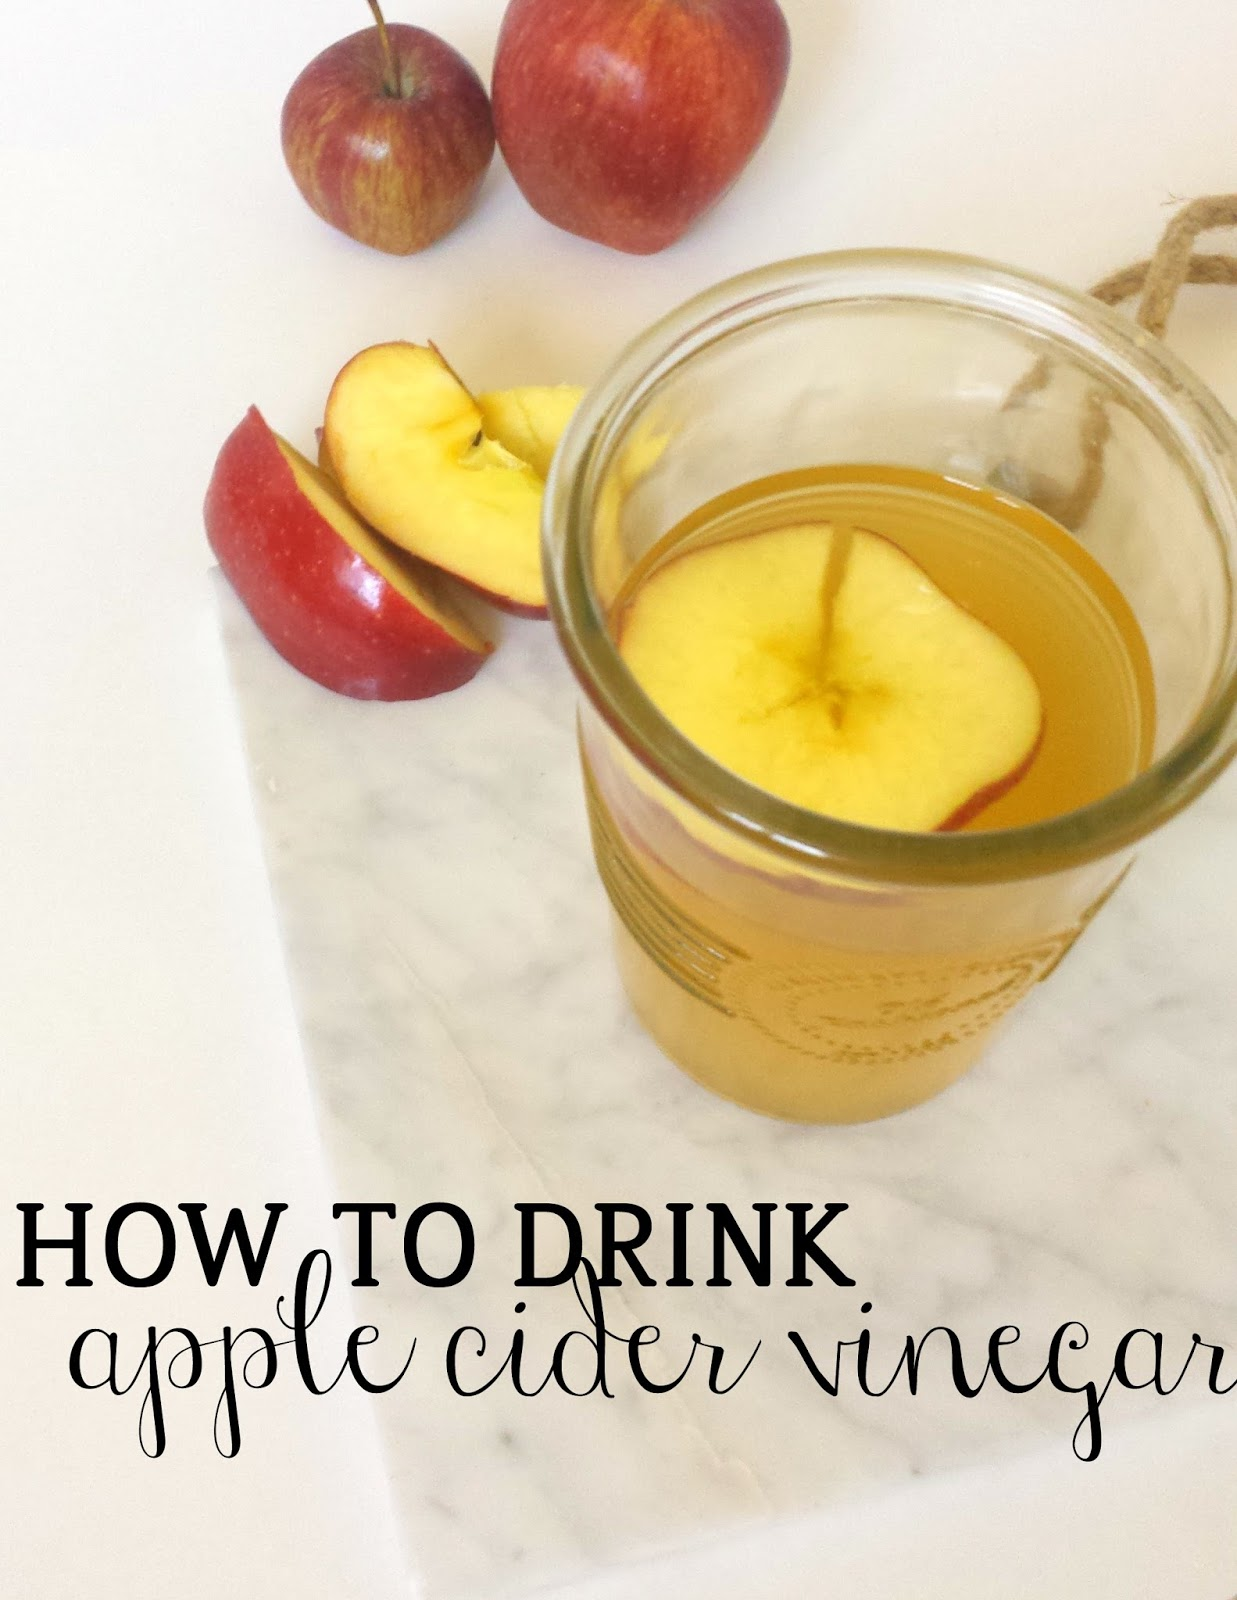 how to mix apple cider vinegar to drink